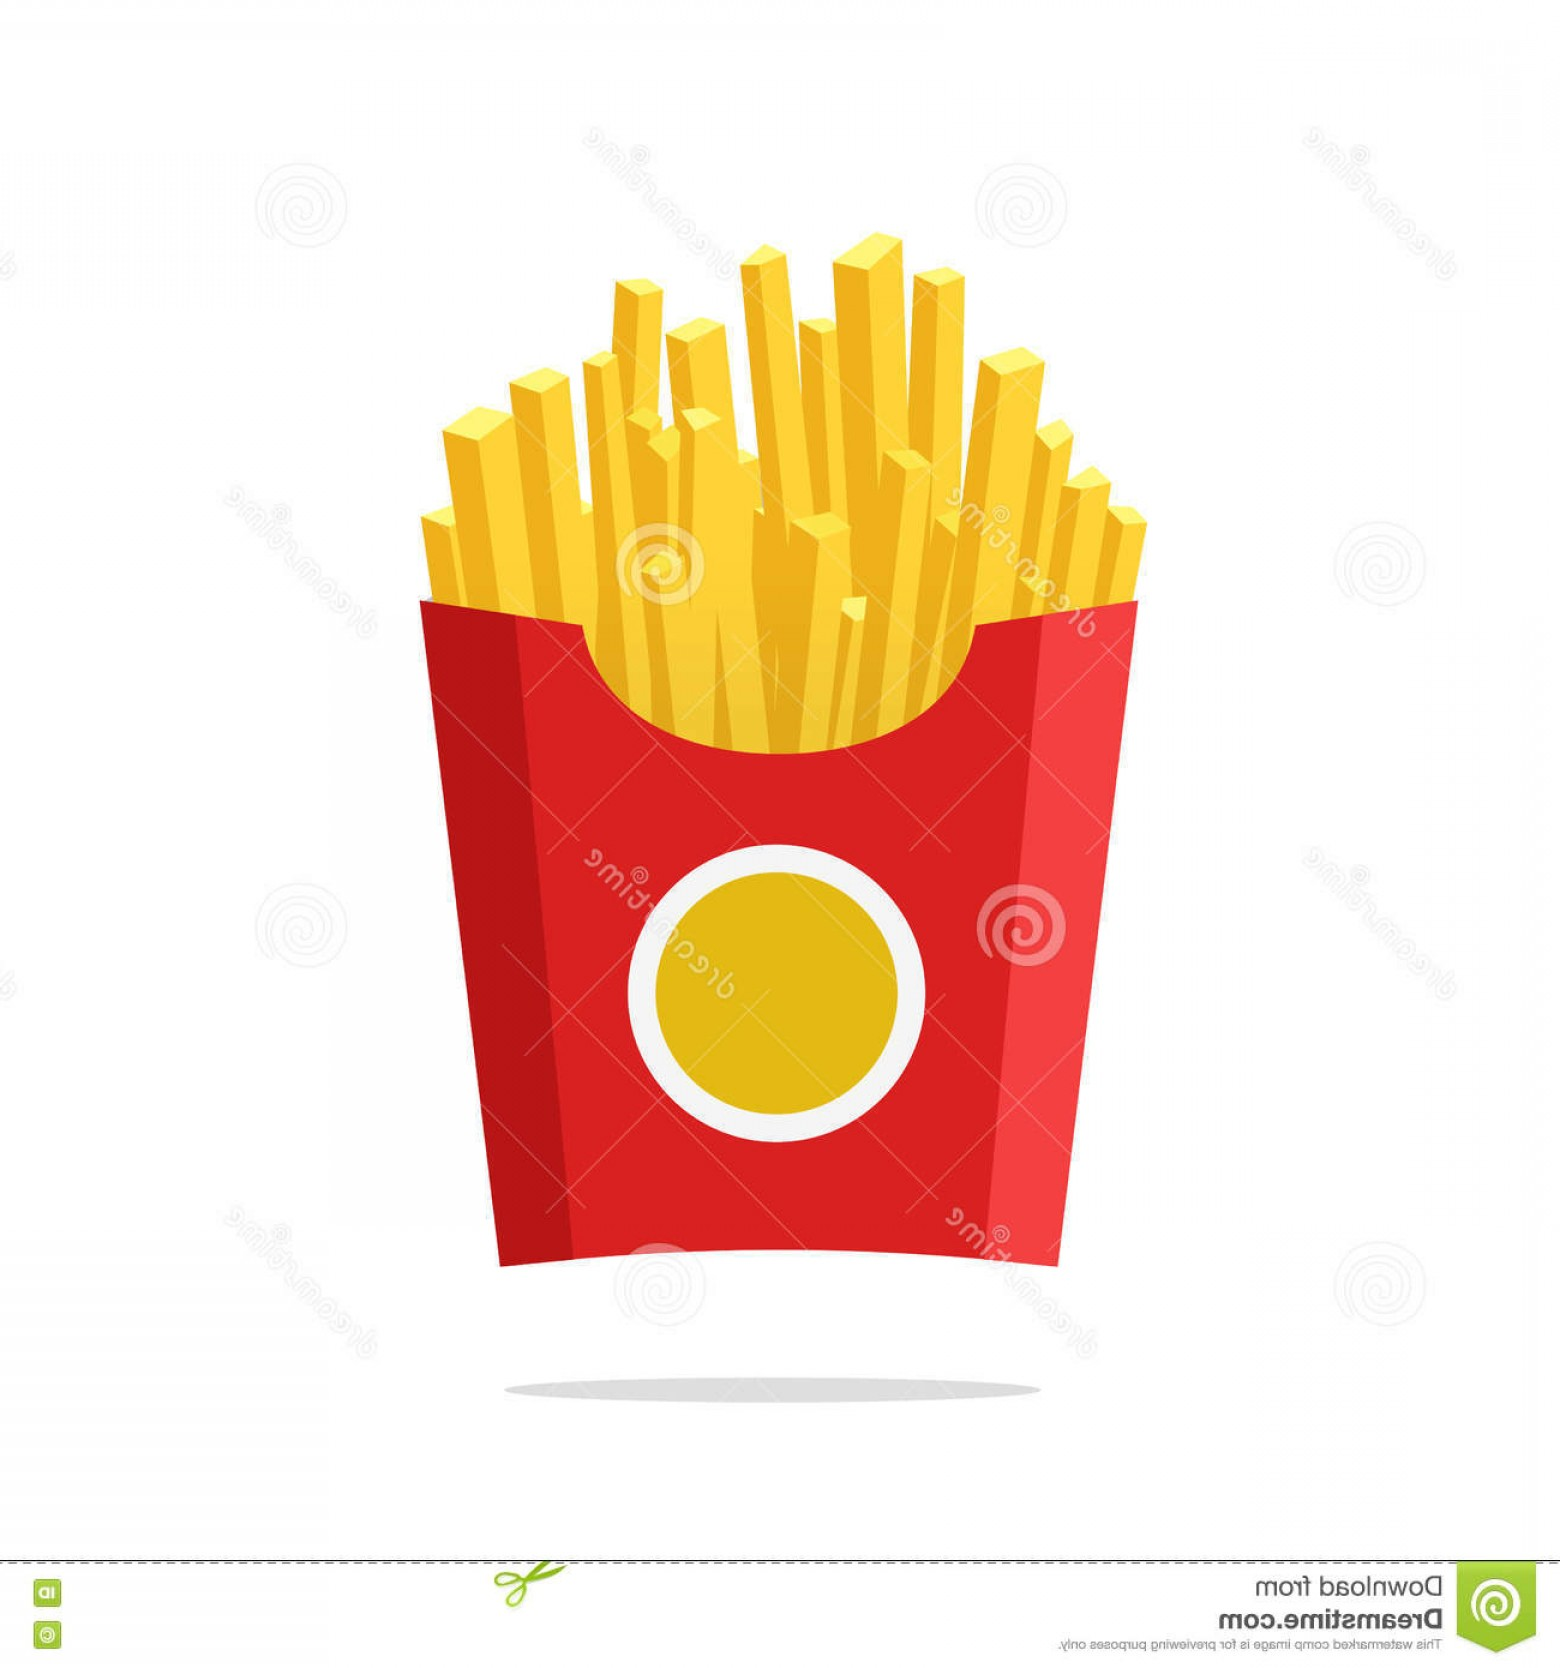 Fries Vector: Stock Illustration French Fries Vector Illustration Fried Potatoes Paper Box Isolated Flat Cartoon Style Potato White Background Image